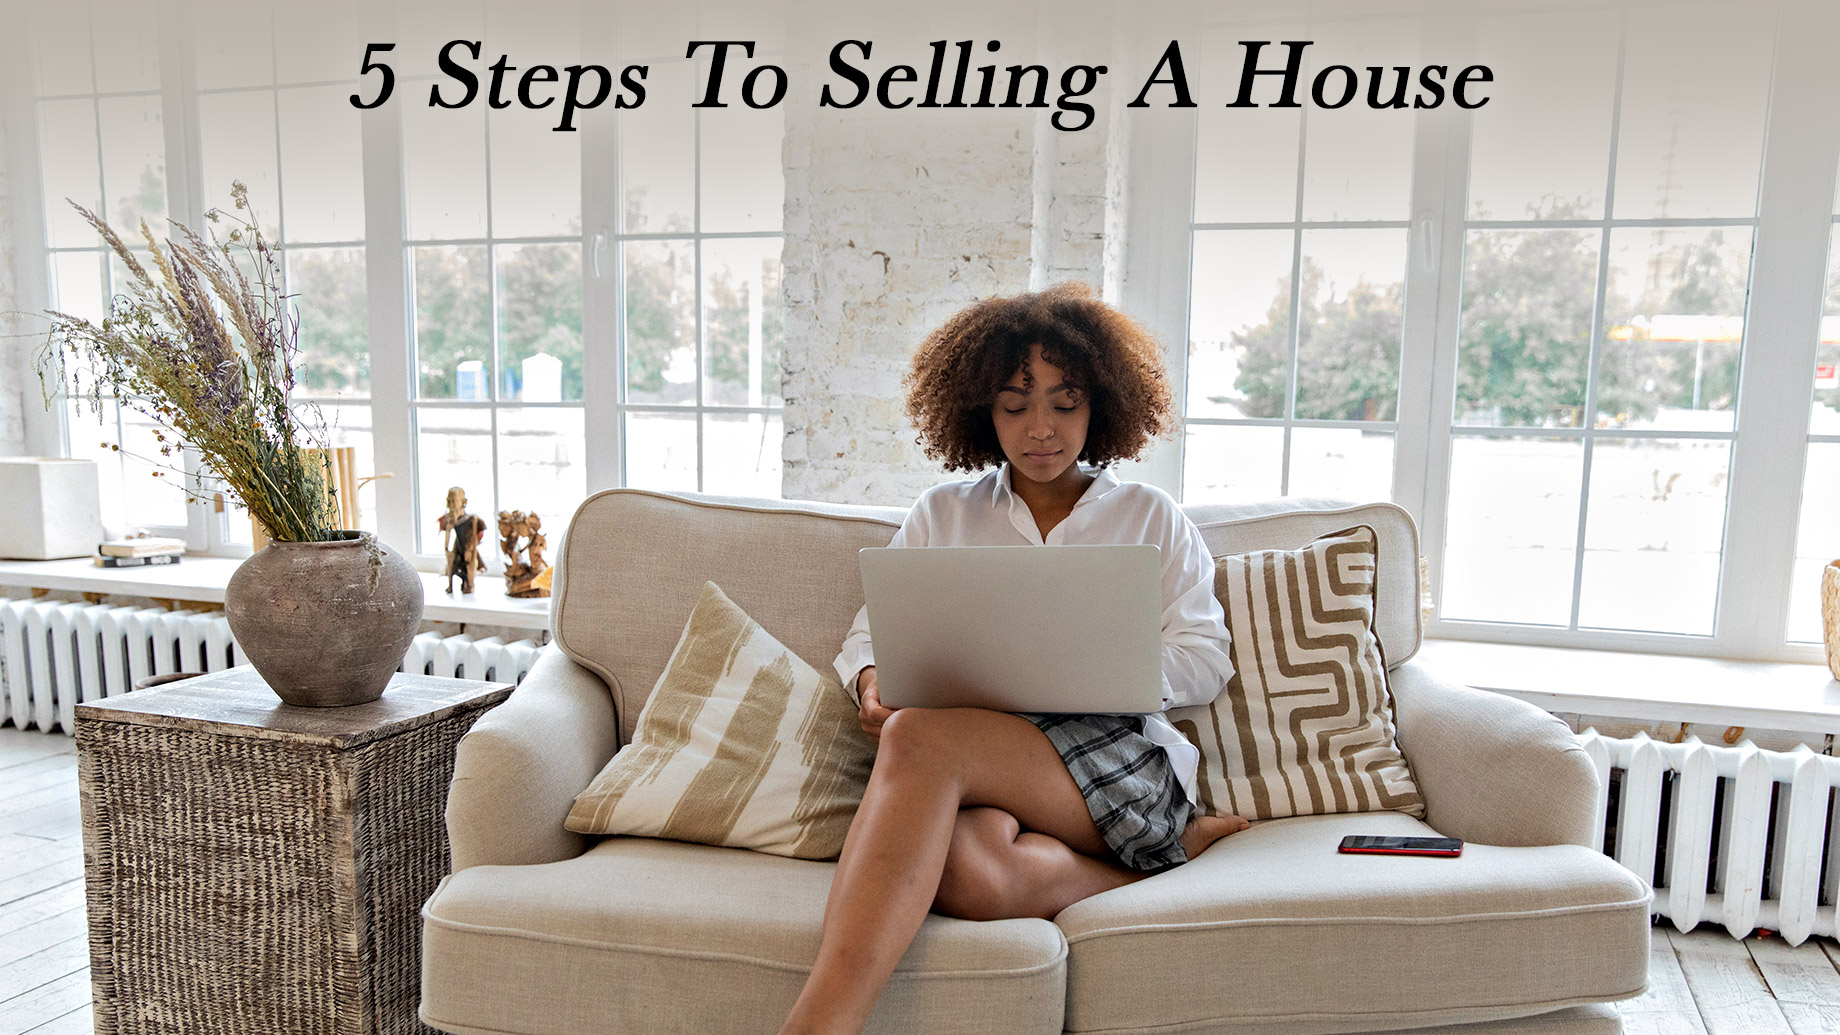 5 Steps To Selling A House